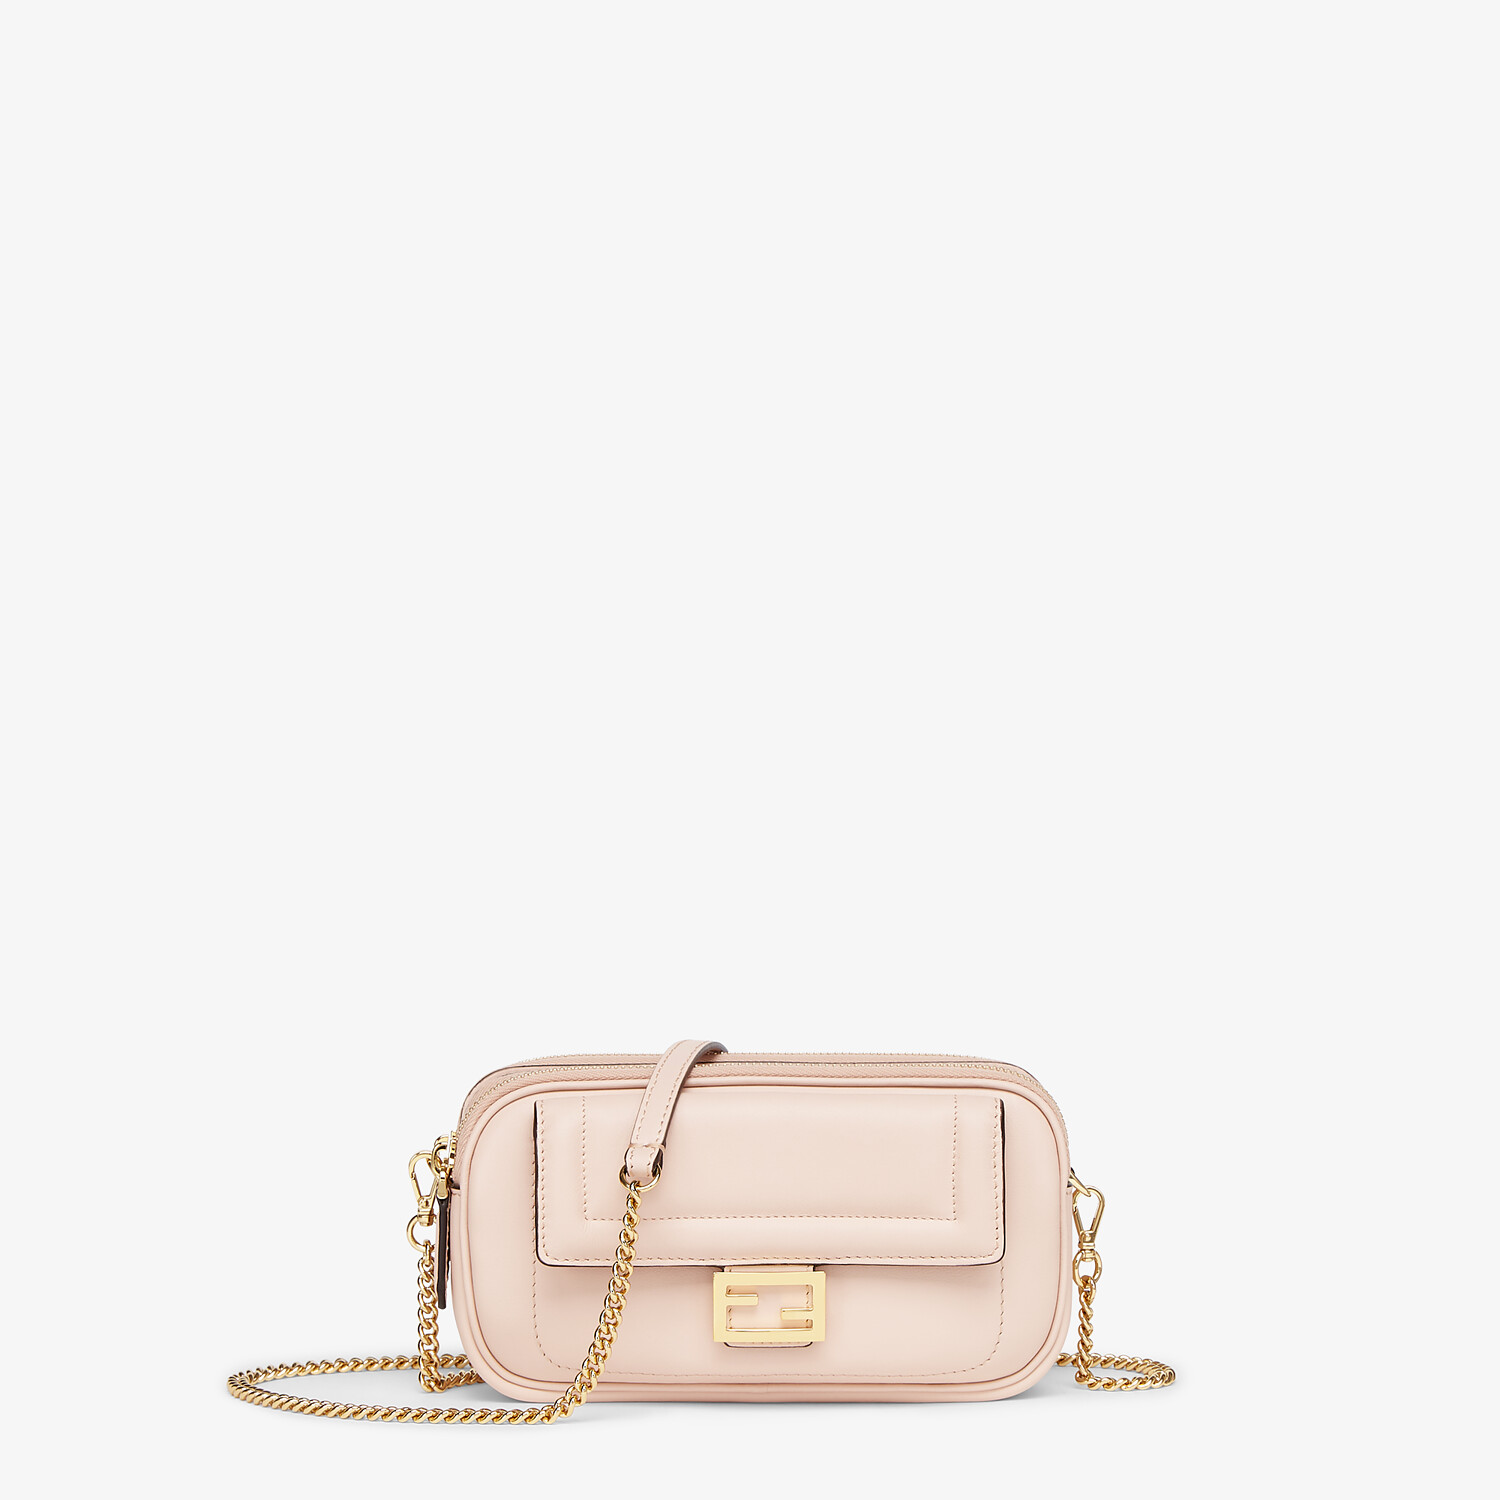 FENDI EASY 2 BAGUETTE - Pink leather mini-bag - view 1 detail